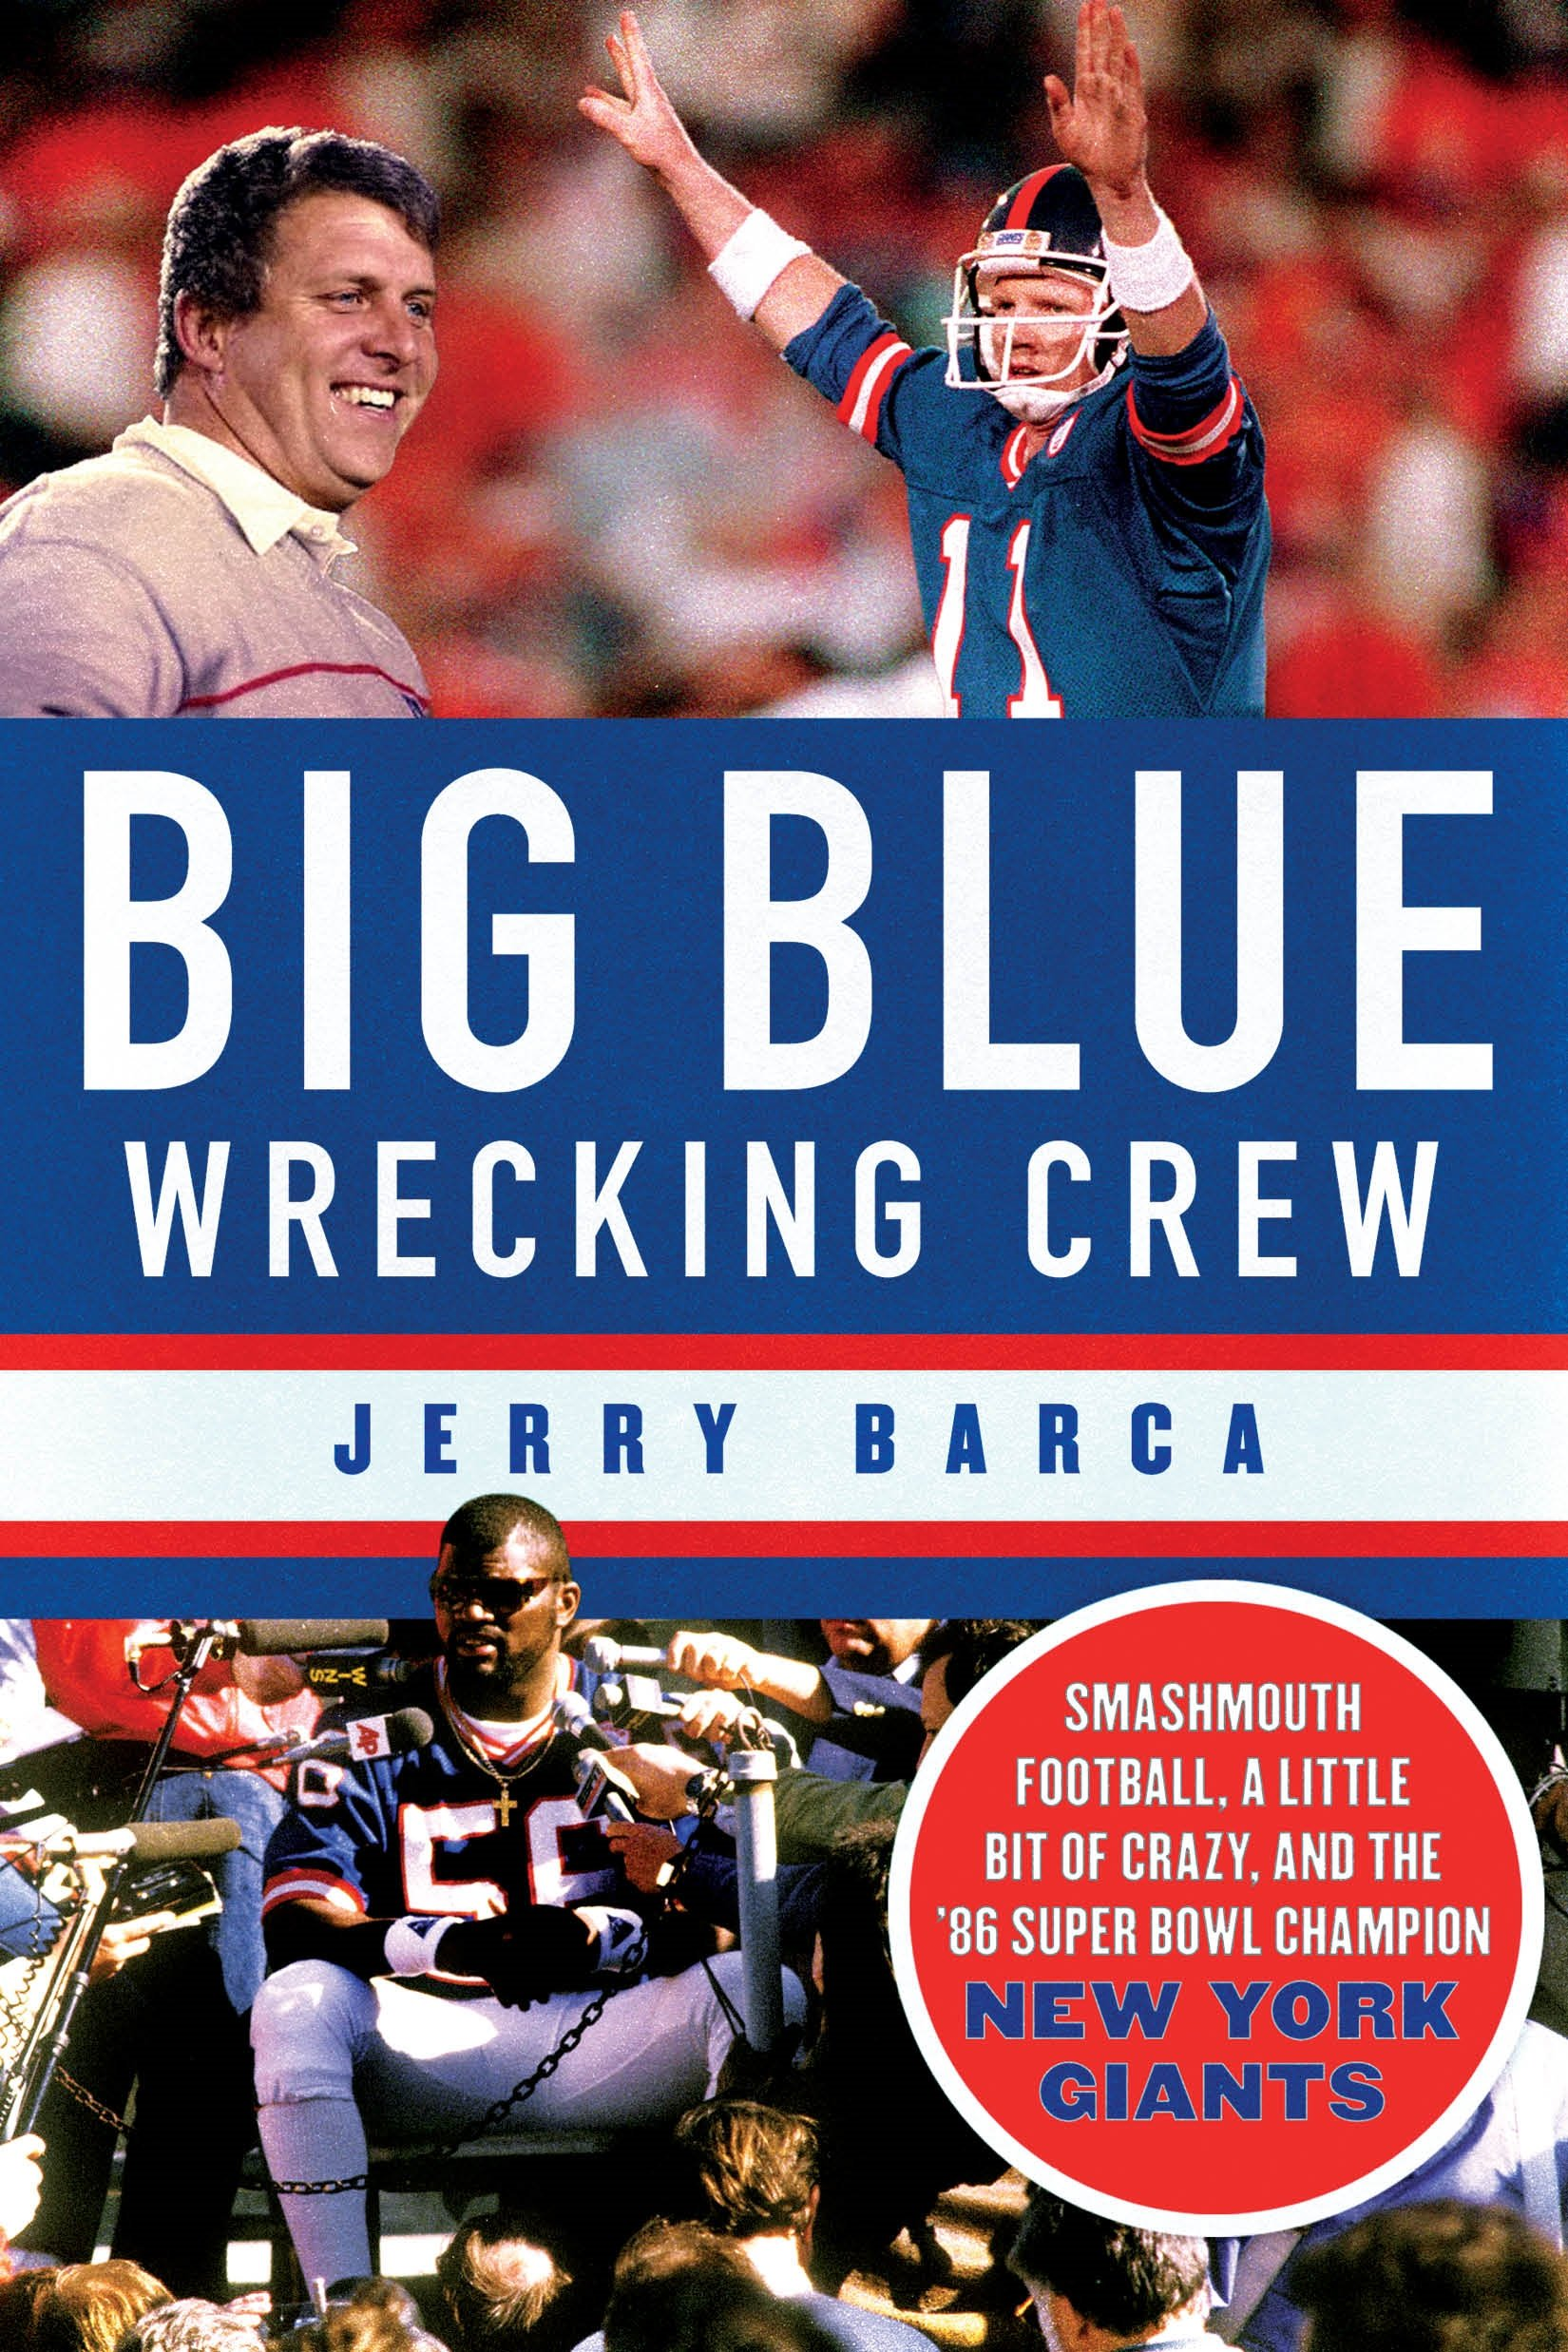 Download Big Blue Wrecking Crew: Smashmouth Football, a Little Bit of Crazy, and the '86 Super Bowl Champion New York Giants pdf